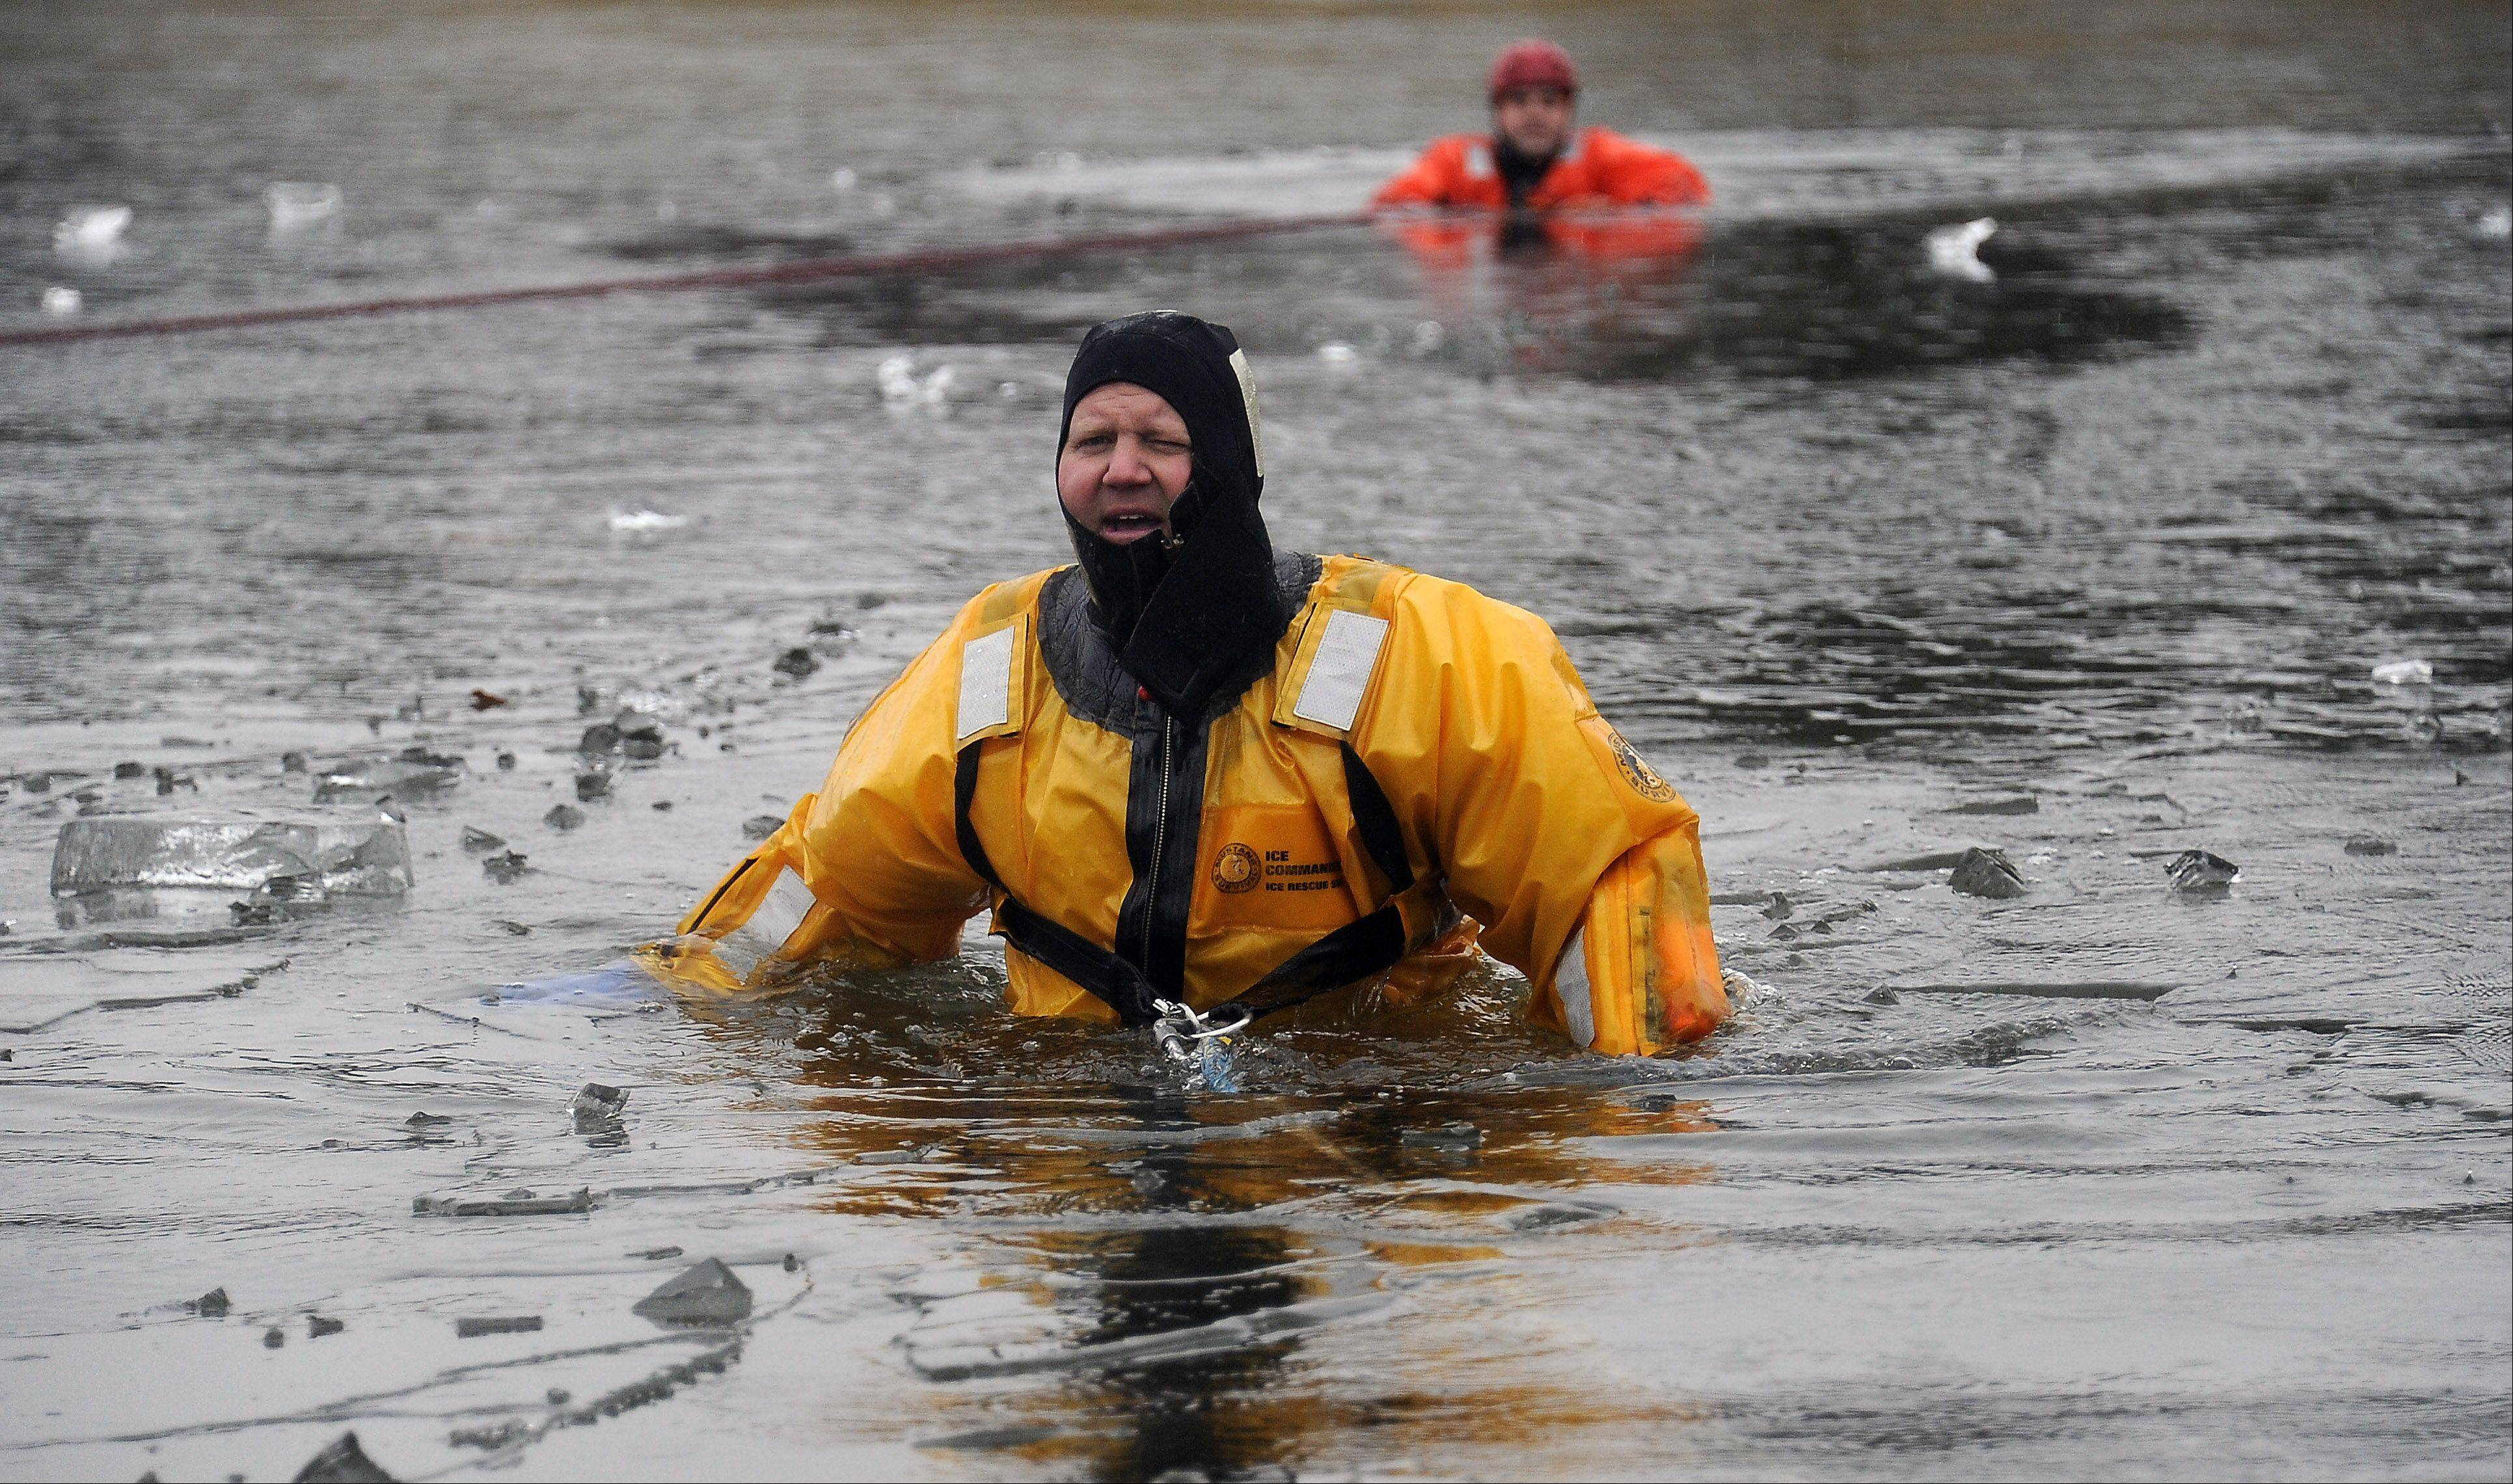 Firefighter/paramedic Jason Stockton from Lincolnshire makes ice break with his body donning a dry suit and braving the 30 degree temperature to practice his ice rescue drills. The retention pond located next to the Combined Area Fire Training Facility in Buffalo Grove is where the training took place.